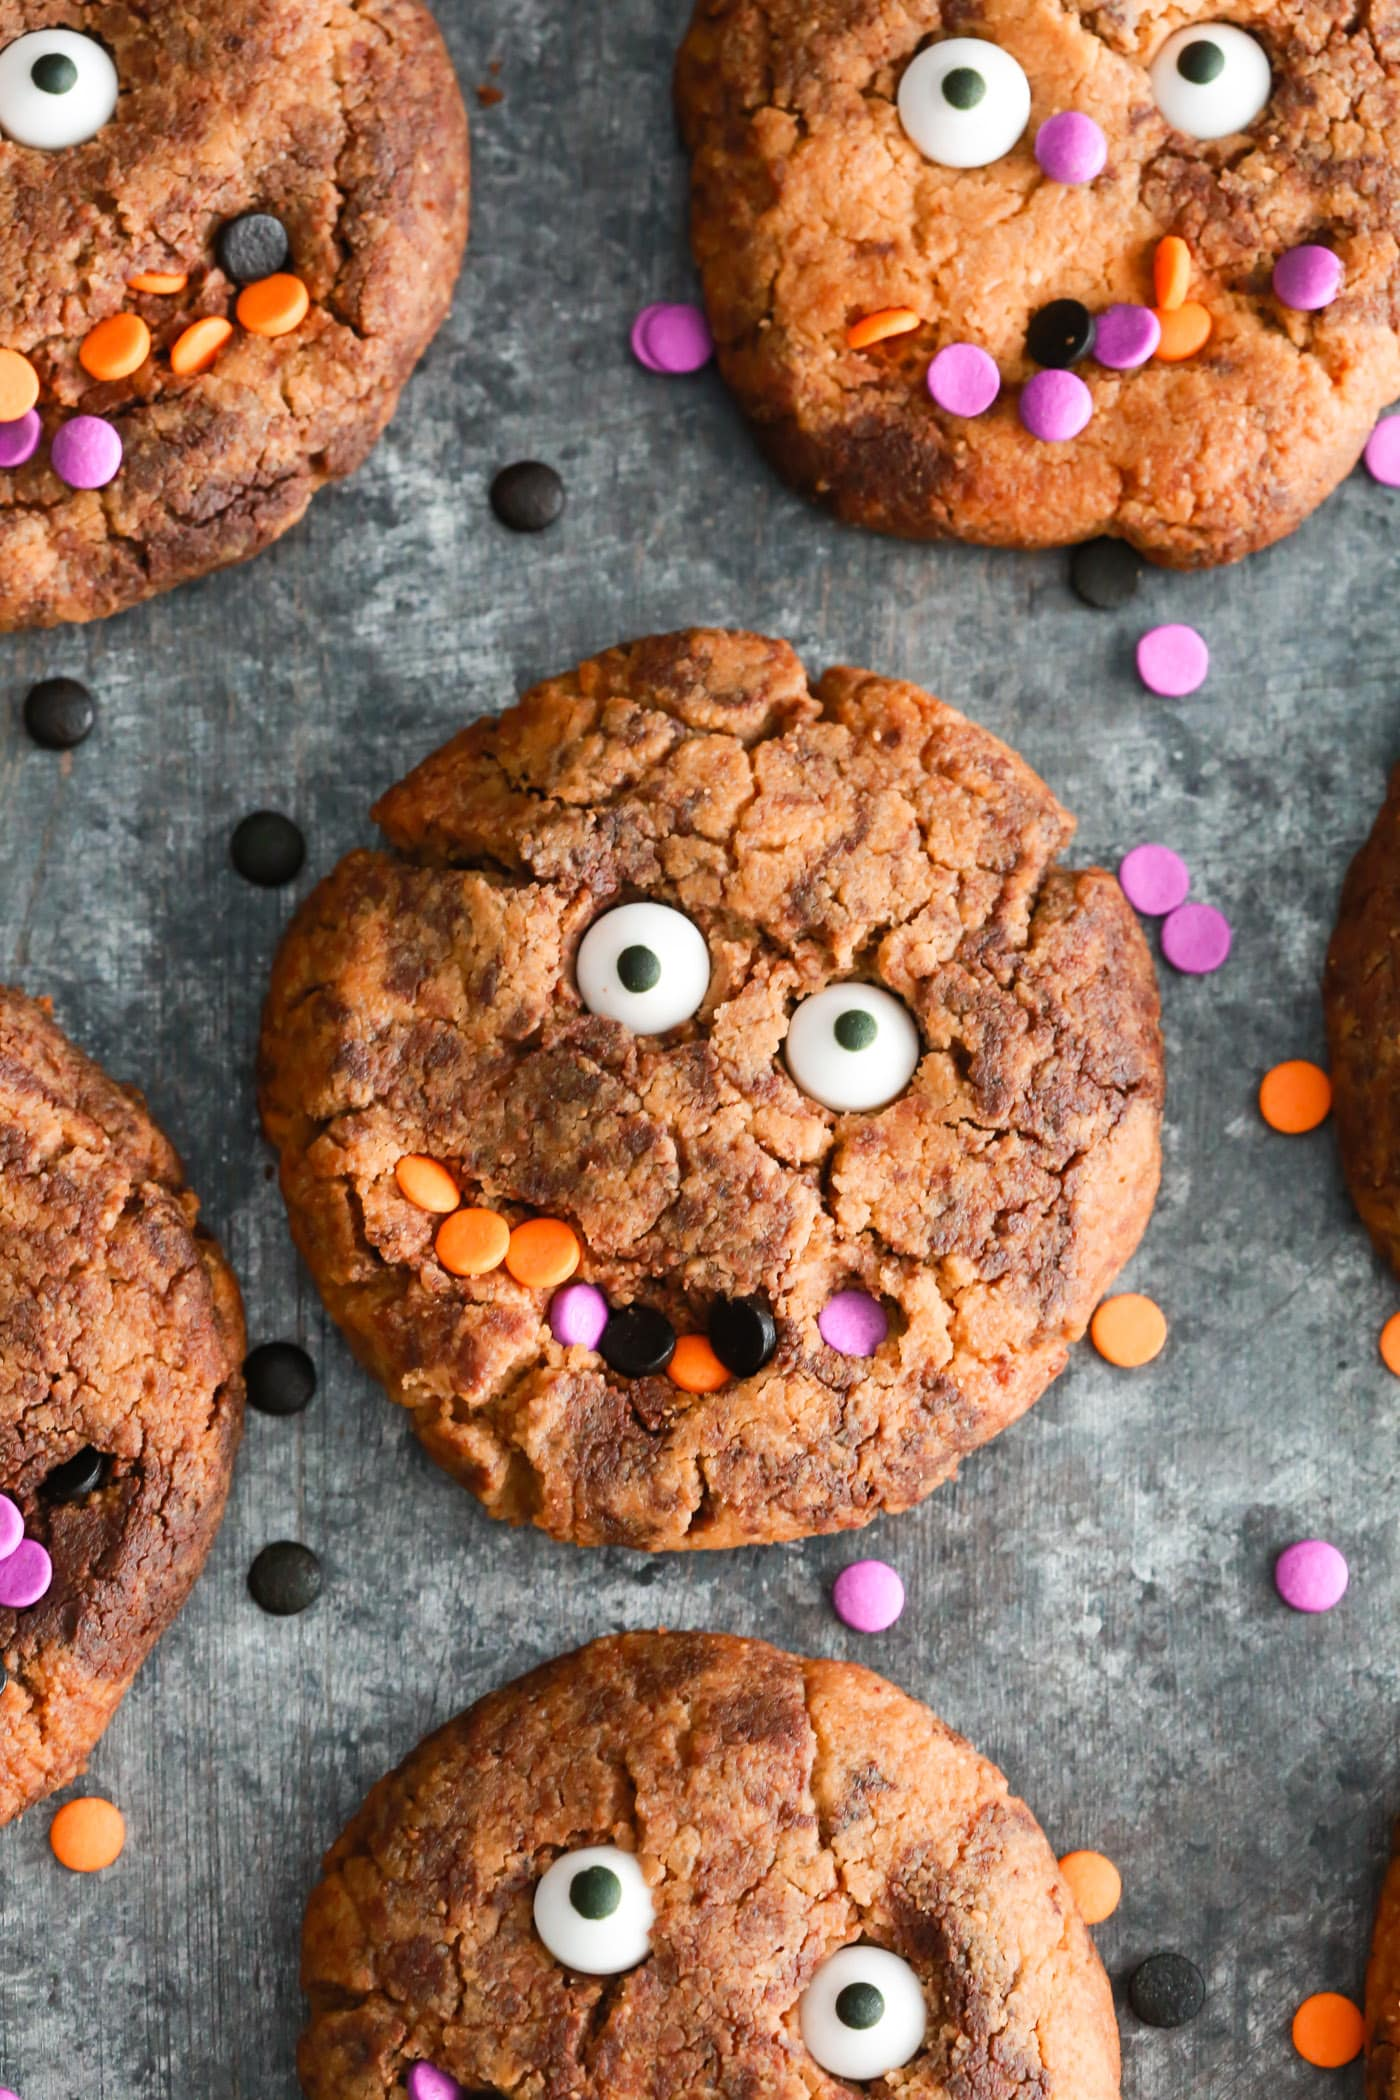 Perfect fun Gluten-free Halloween cookies to make with your kids. They're made with almond butter, natural sweetener and dark chocolate chips.